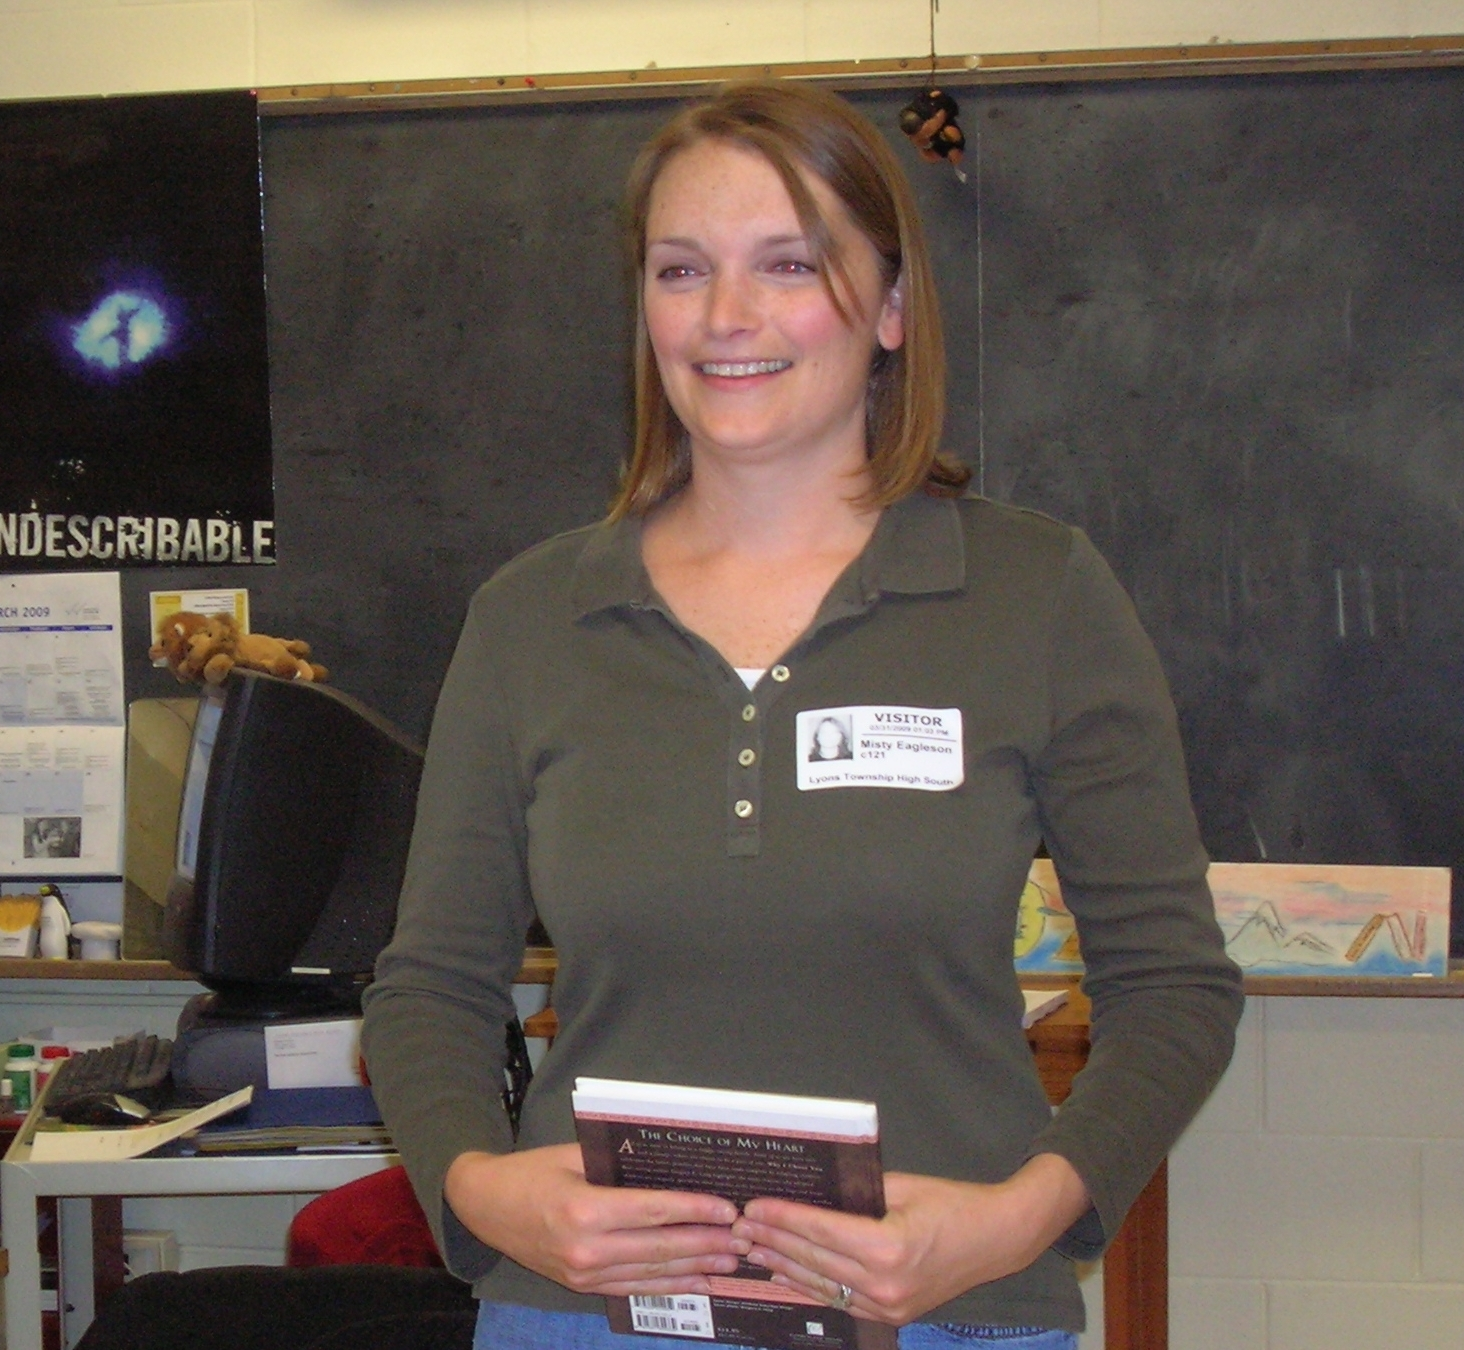 Cradle volunteer speaking at a classroom